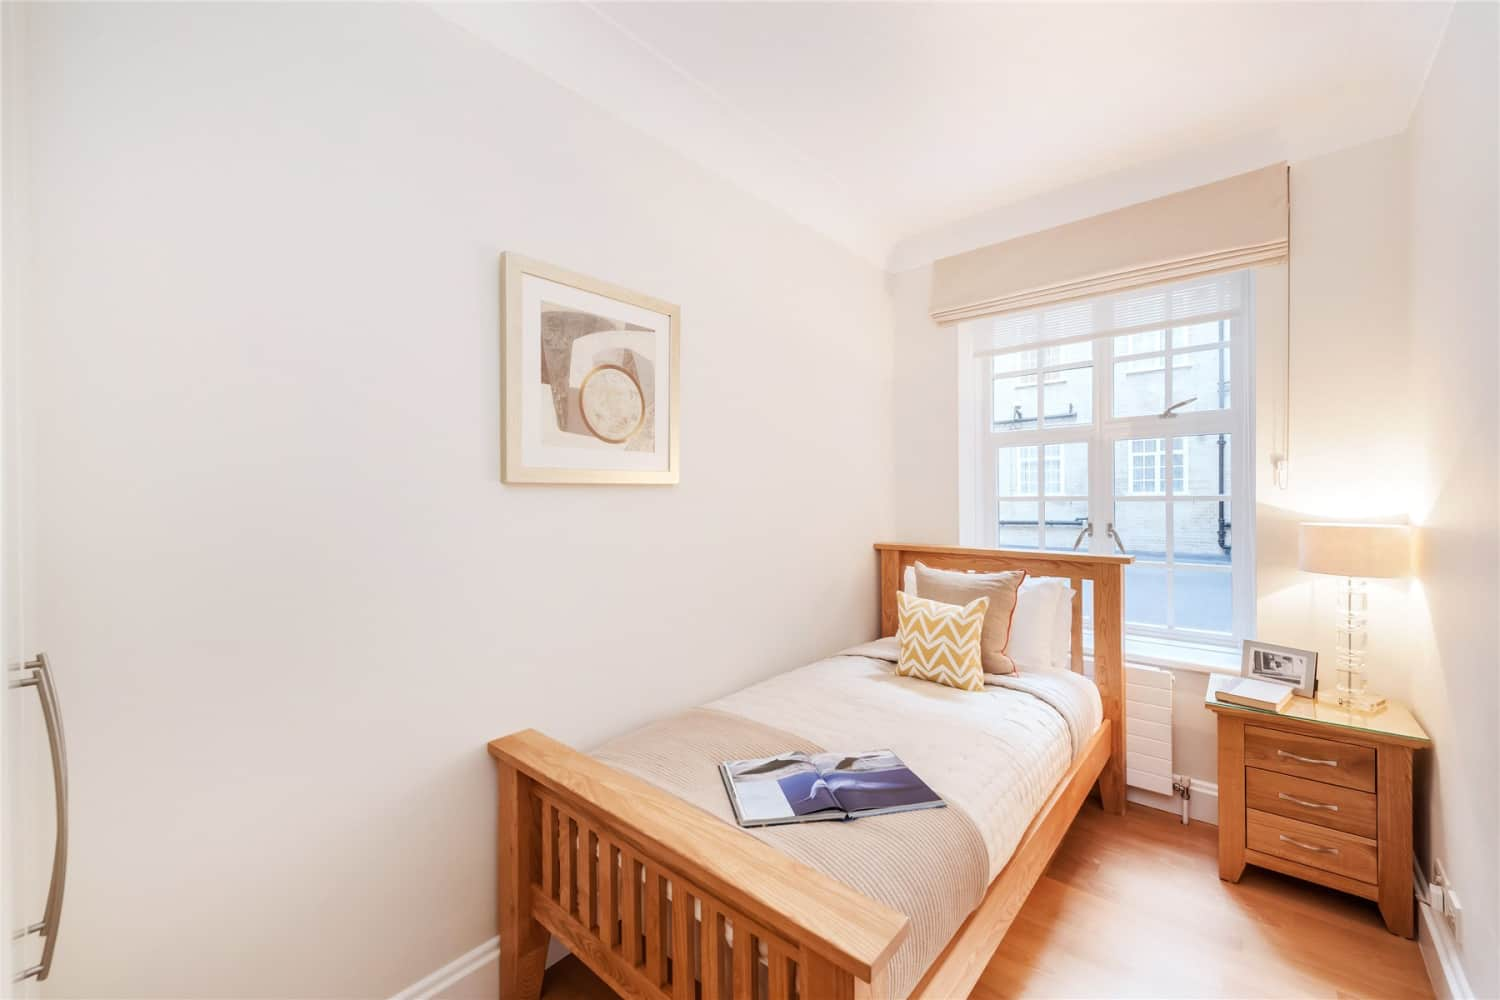 Apartment London, W8 - Stafford Court Kensington High Street London W8 - 04